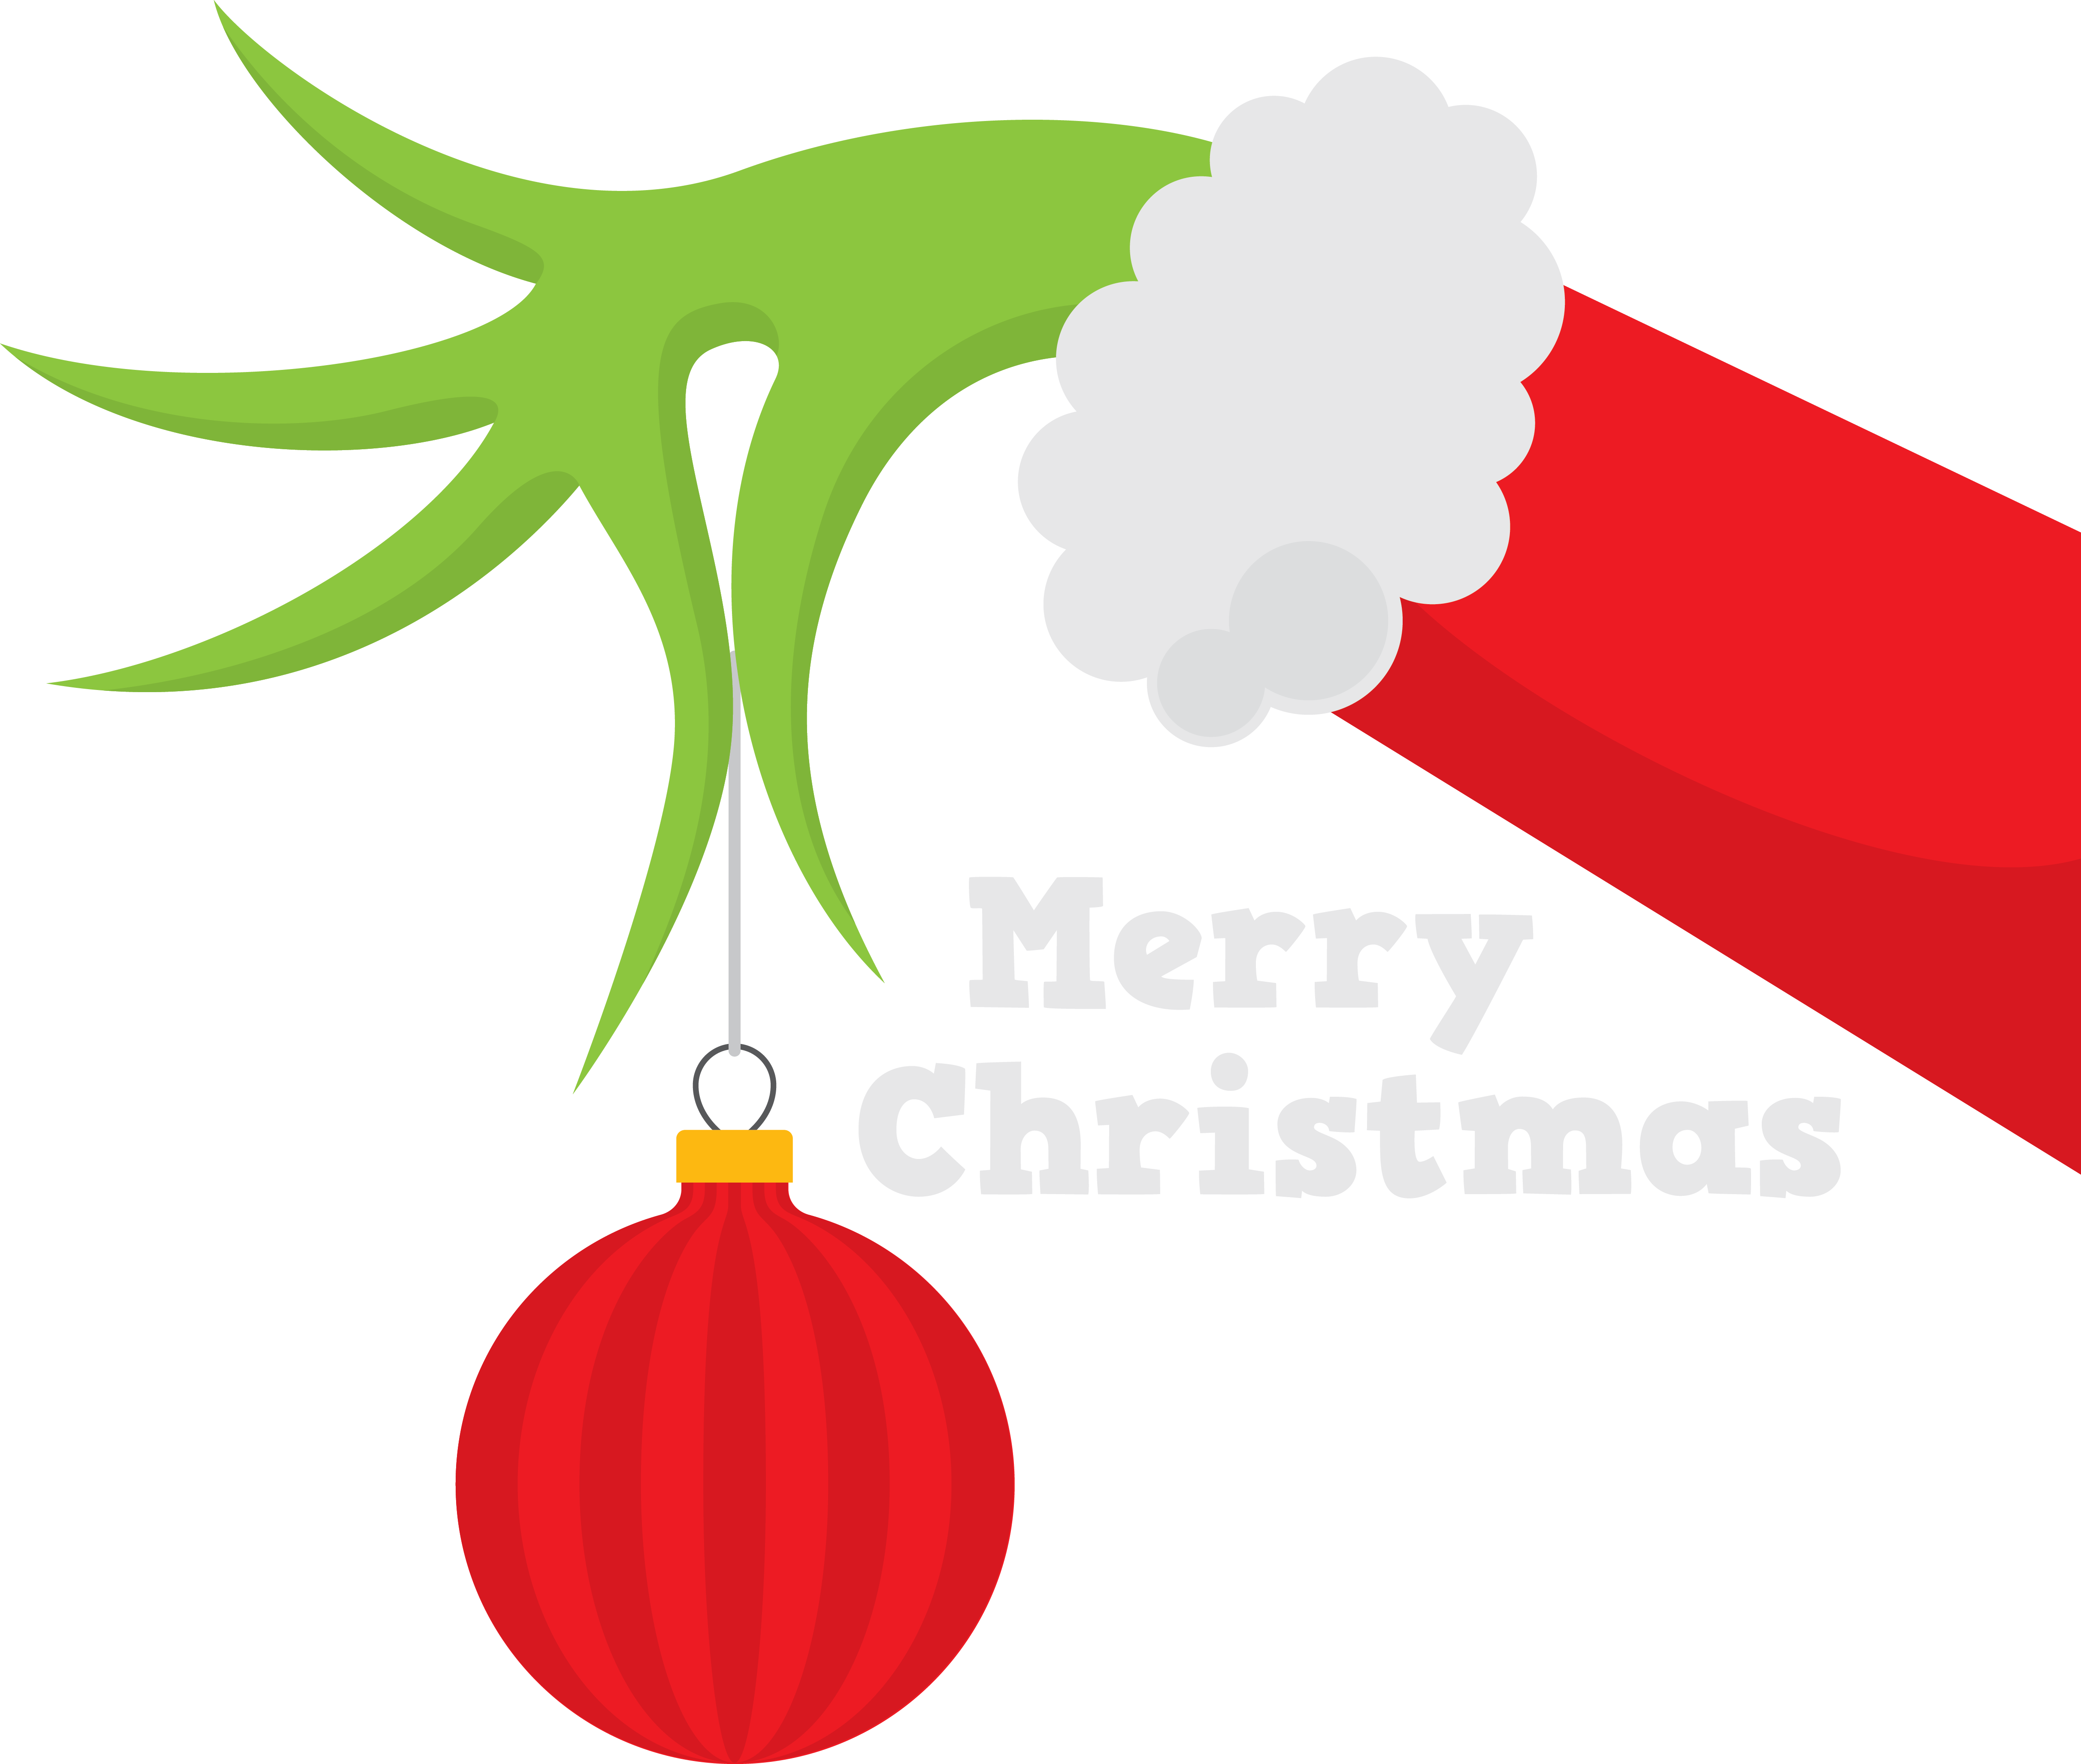 Sleigh clipart tree lighting. The grinch silhouette at